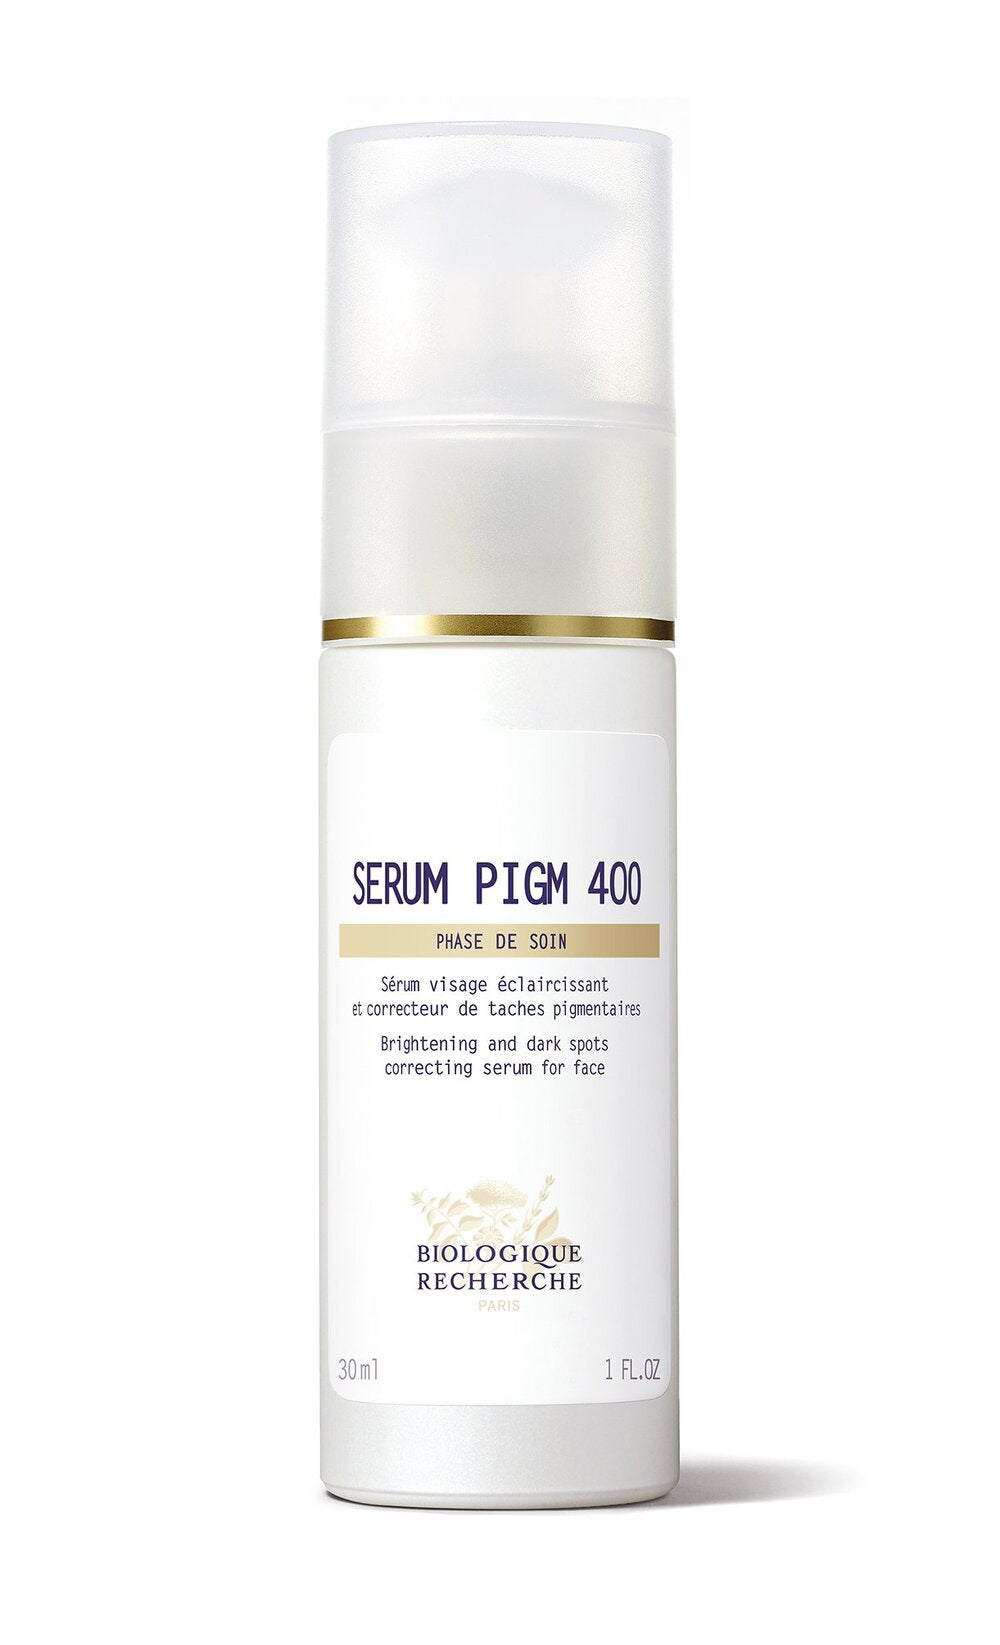 Serum Pigm 400 1 fl oz